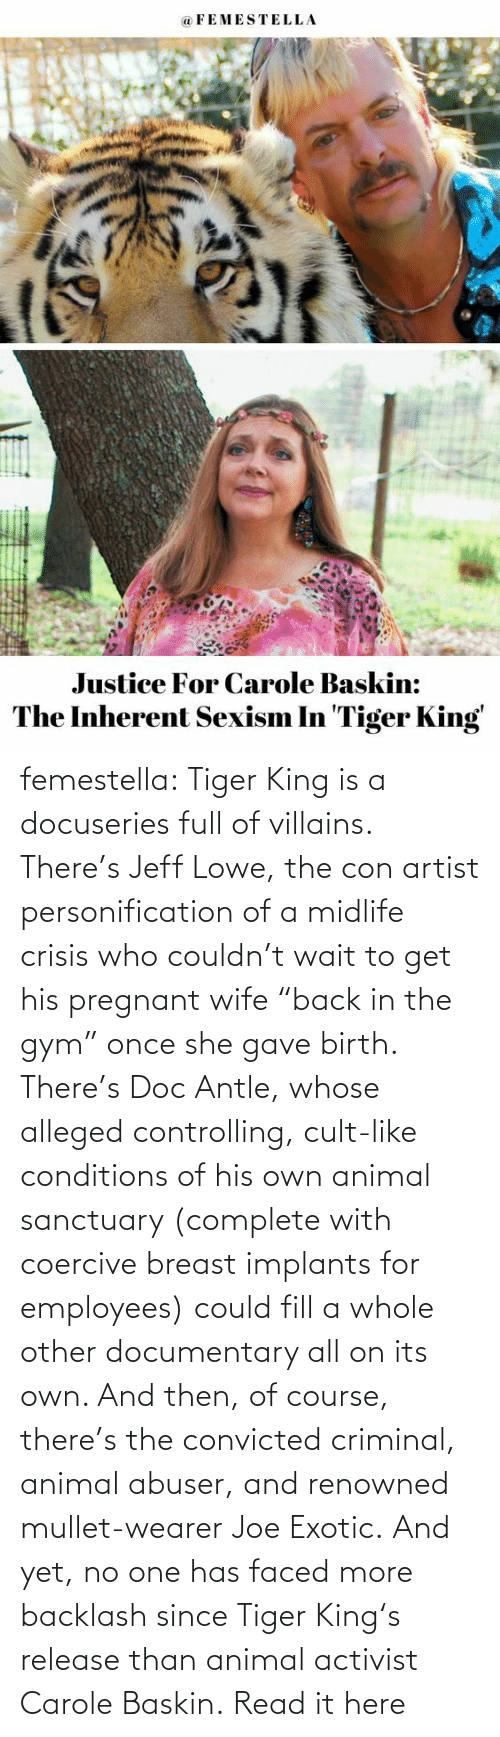 "Gym: femestella: Tiger King is a docuseries full of villains. There's Jeff Lowe, the con artist personification of a midlife crisis who couldn't wait to get his pregnant wife ""back in the gym"" once she gave birth. There's Doc Antle, whose alleged controlling, cult-like conditions of his own animal sanctuary (complete with coercive breast implants for employees) could fill a whole other documentary all on its own. And then, of course, there's the convicted criminal, animal abuser, and renowned mullet-wearer Joe Exotic. And yet, no one has faced more backlash since Tiger King's release than animal activist Carole Baskin. Read it here"